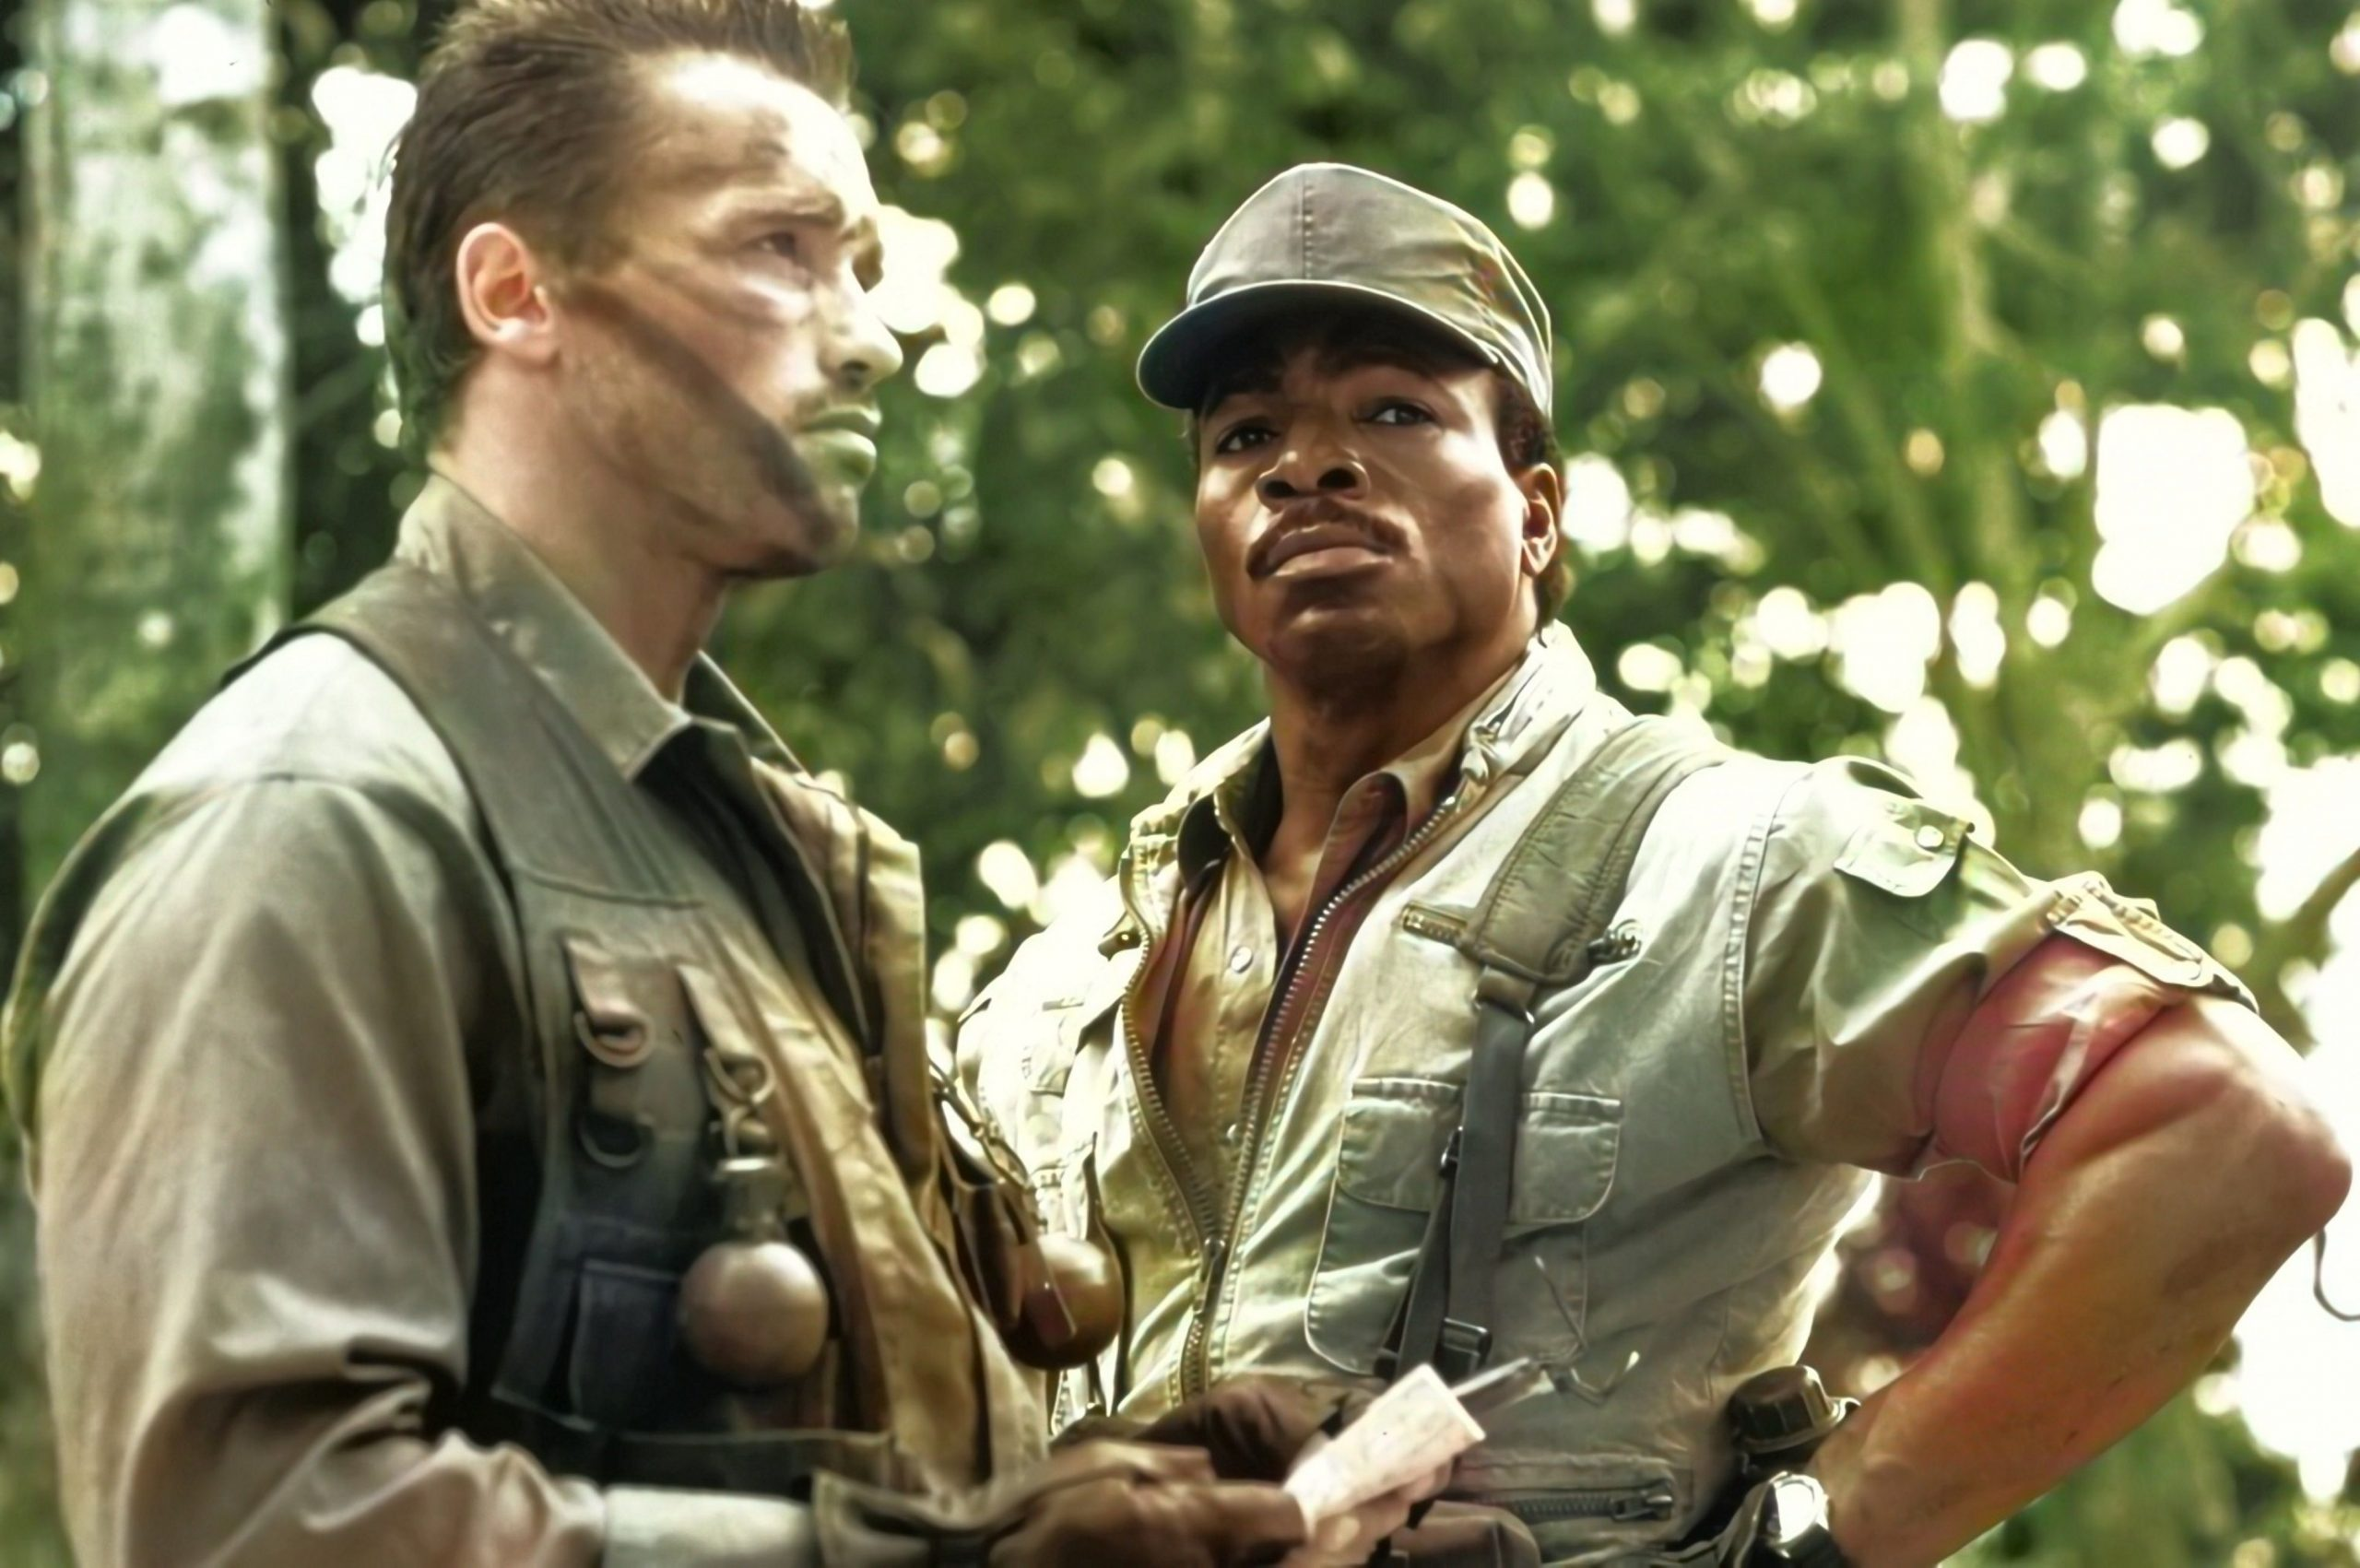 7ff6e7adadc2eaed72fb7e4438a57e82 scaled 30 Things You Never Knew About Carl Weathers